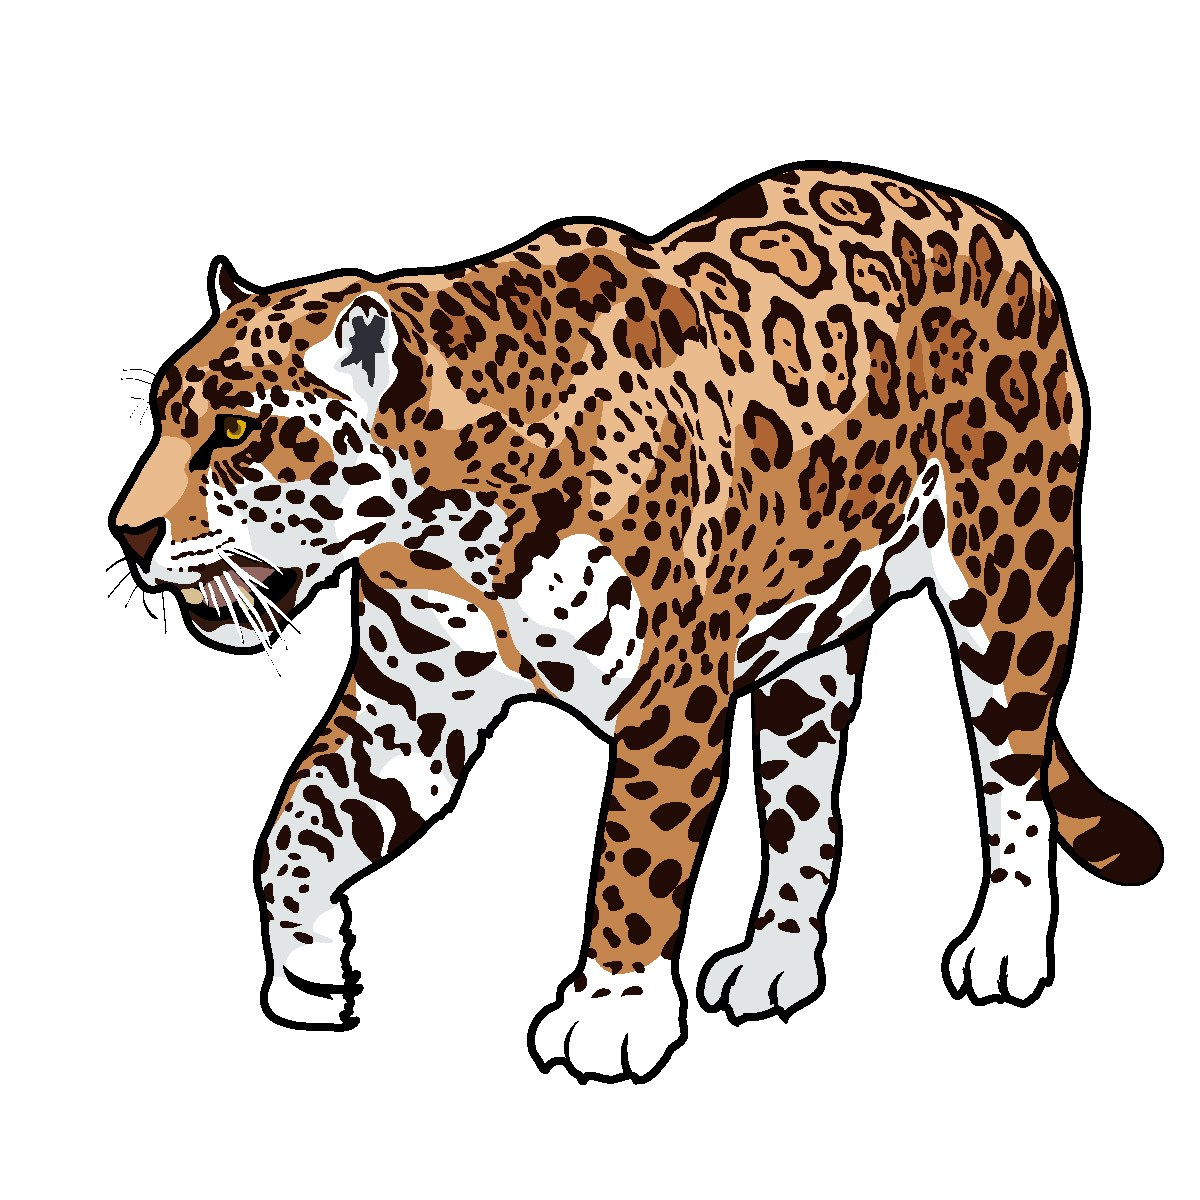 baby jaguar clipart at getdrawings com free for personal use baby rh getdrawings com jaguar clipart images jaguar clipart images